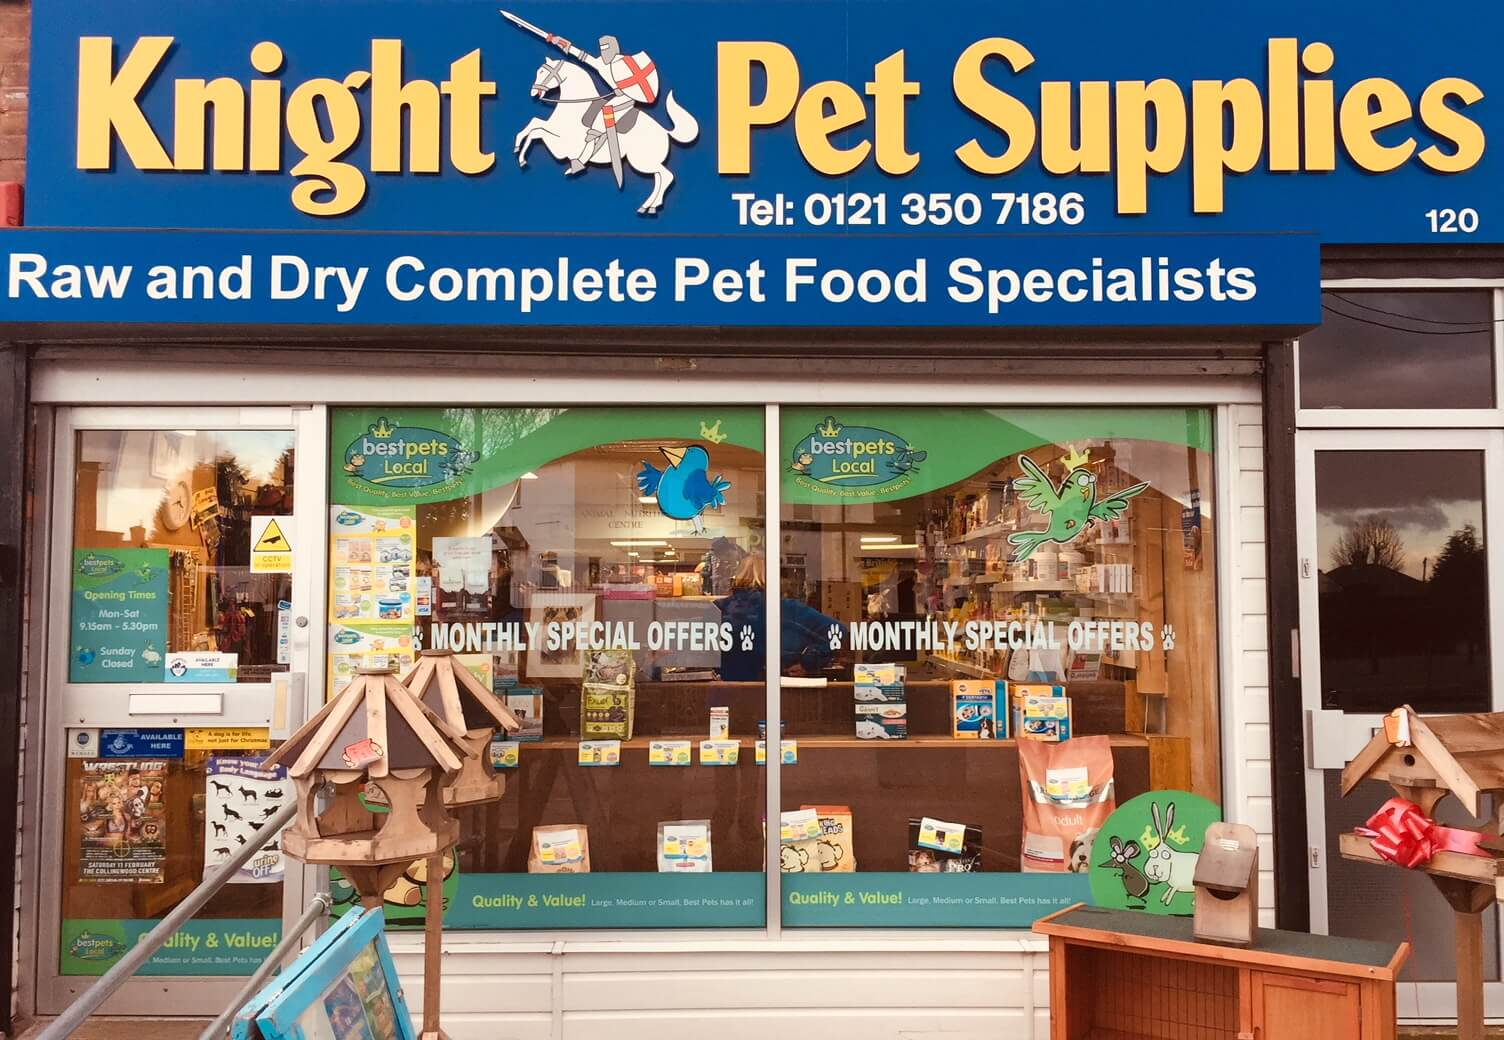 Image of Knight Pet Supplies' Shop Front